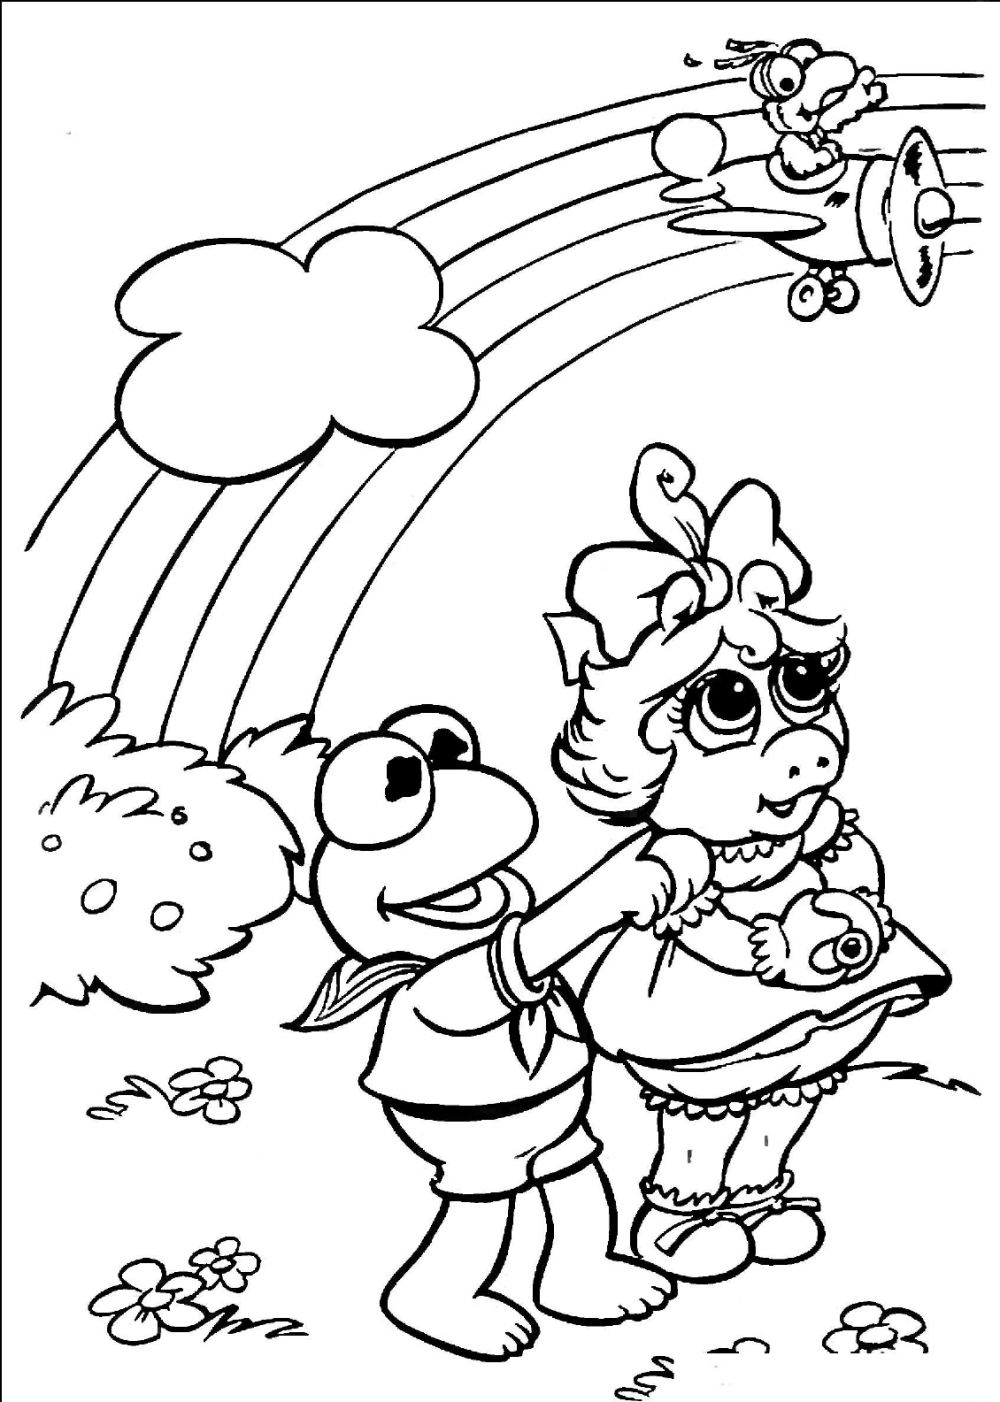 coloring pages rainbow fairies | Rainbow Magic Fairies Coloring Pages Coloring Pages